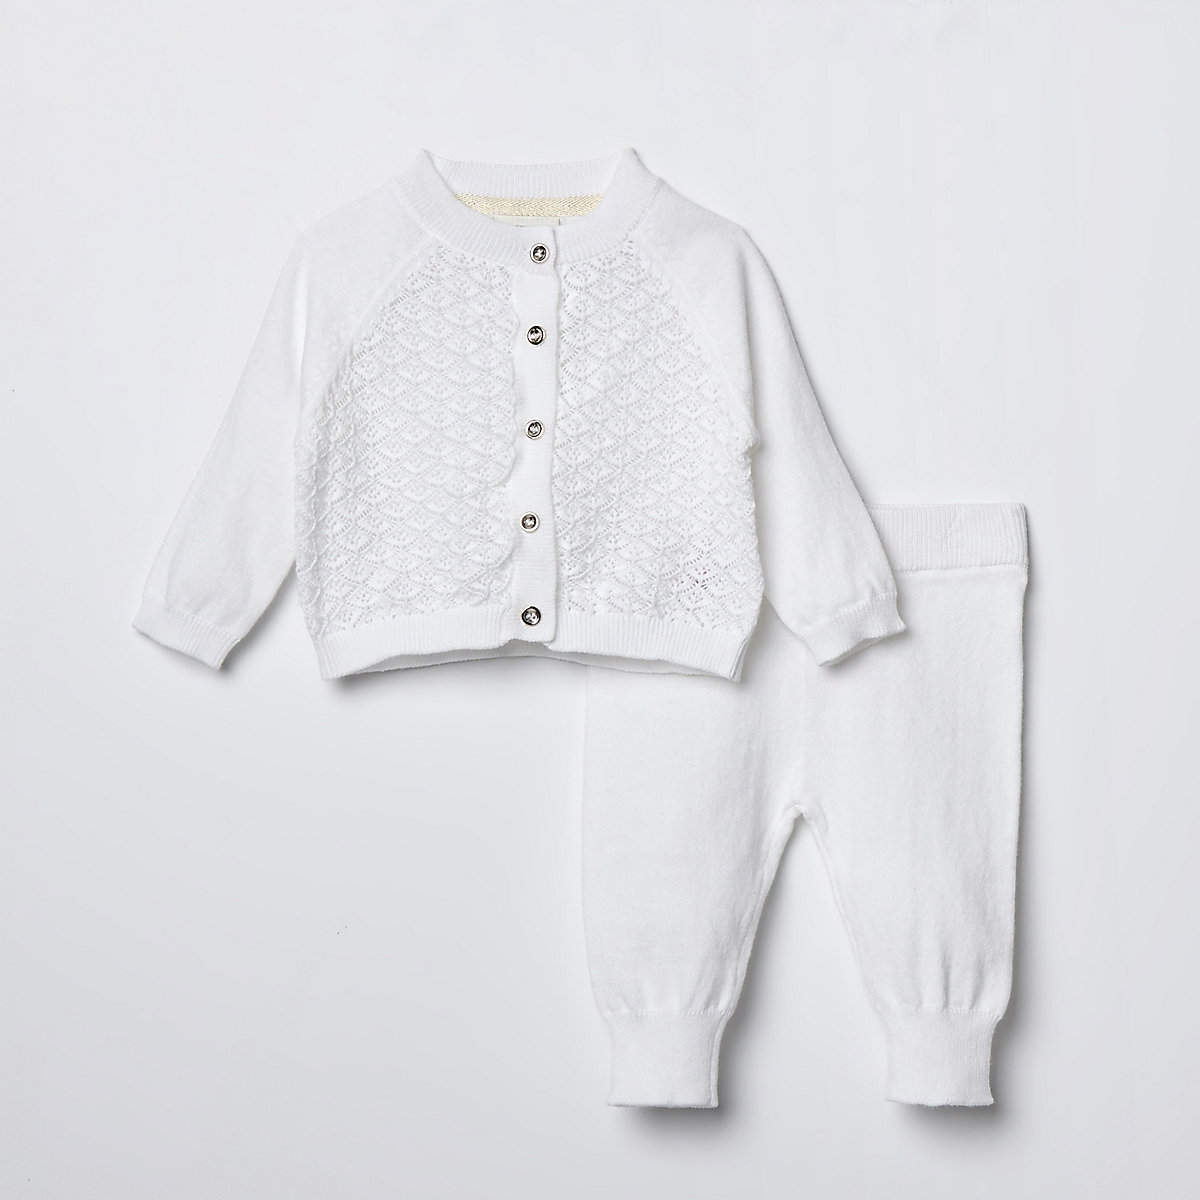 Baby cream knit cardigan outfit